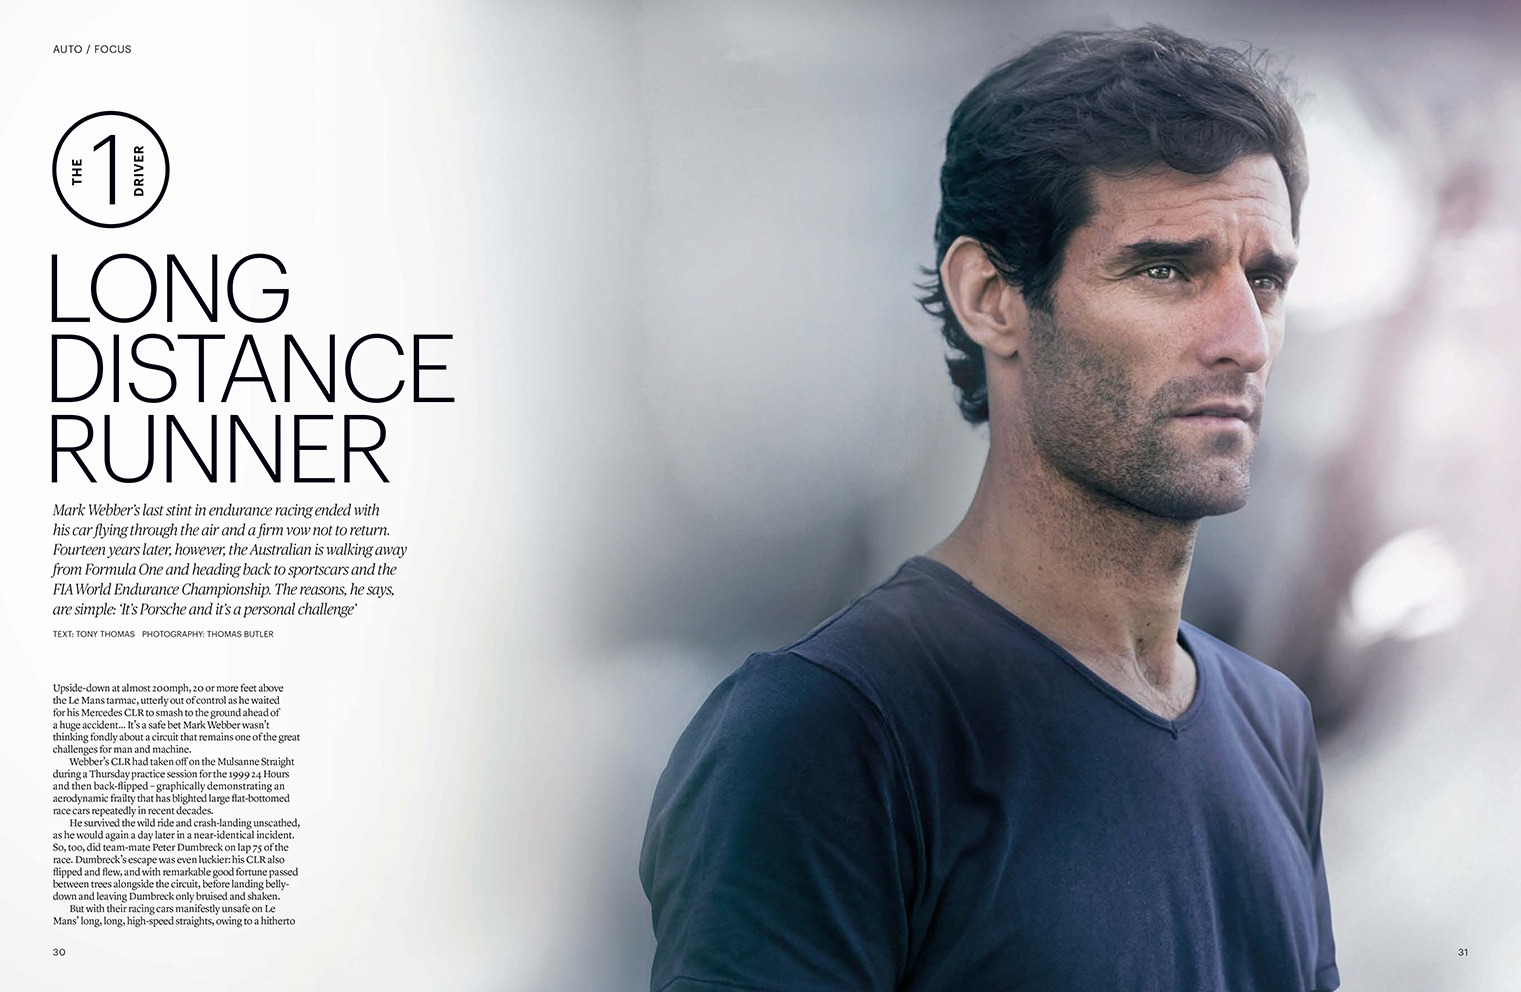 Australian racing driver Mark Webber feature in AUTO the FIA Magazine